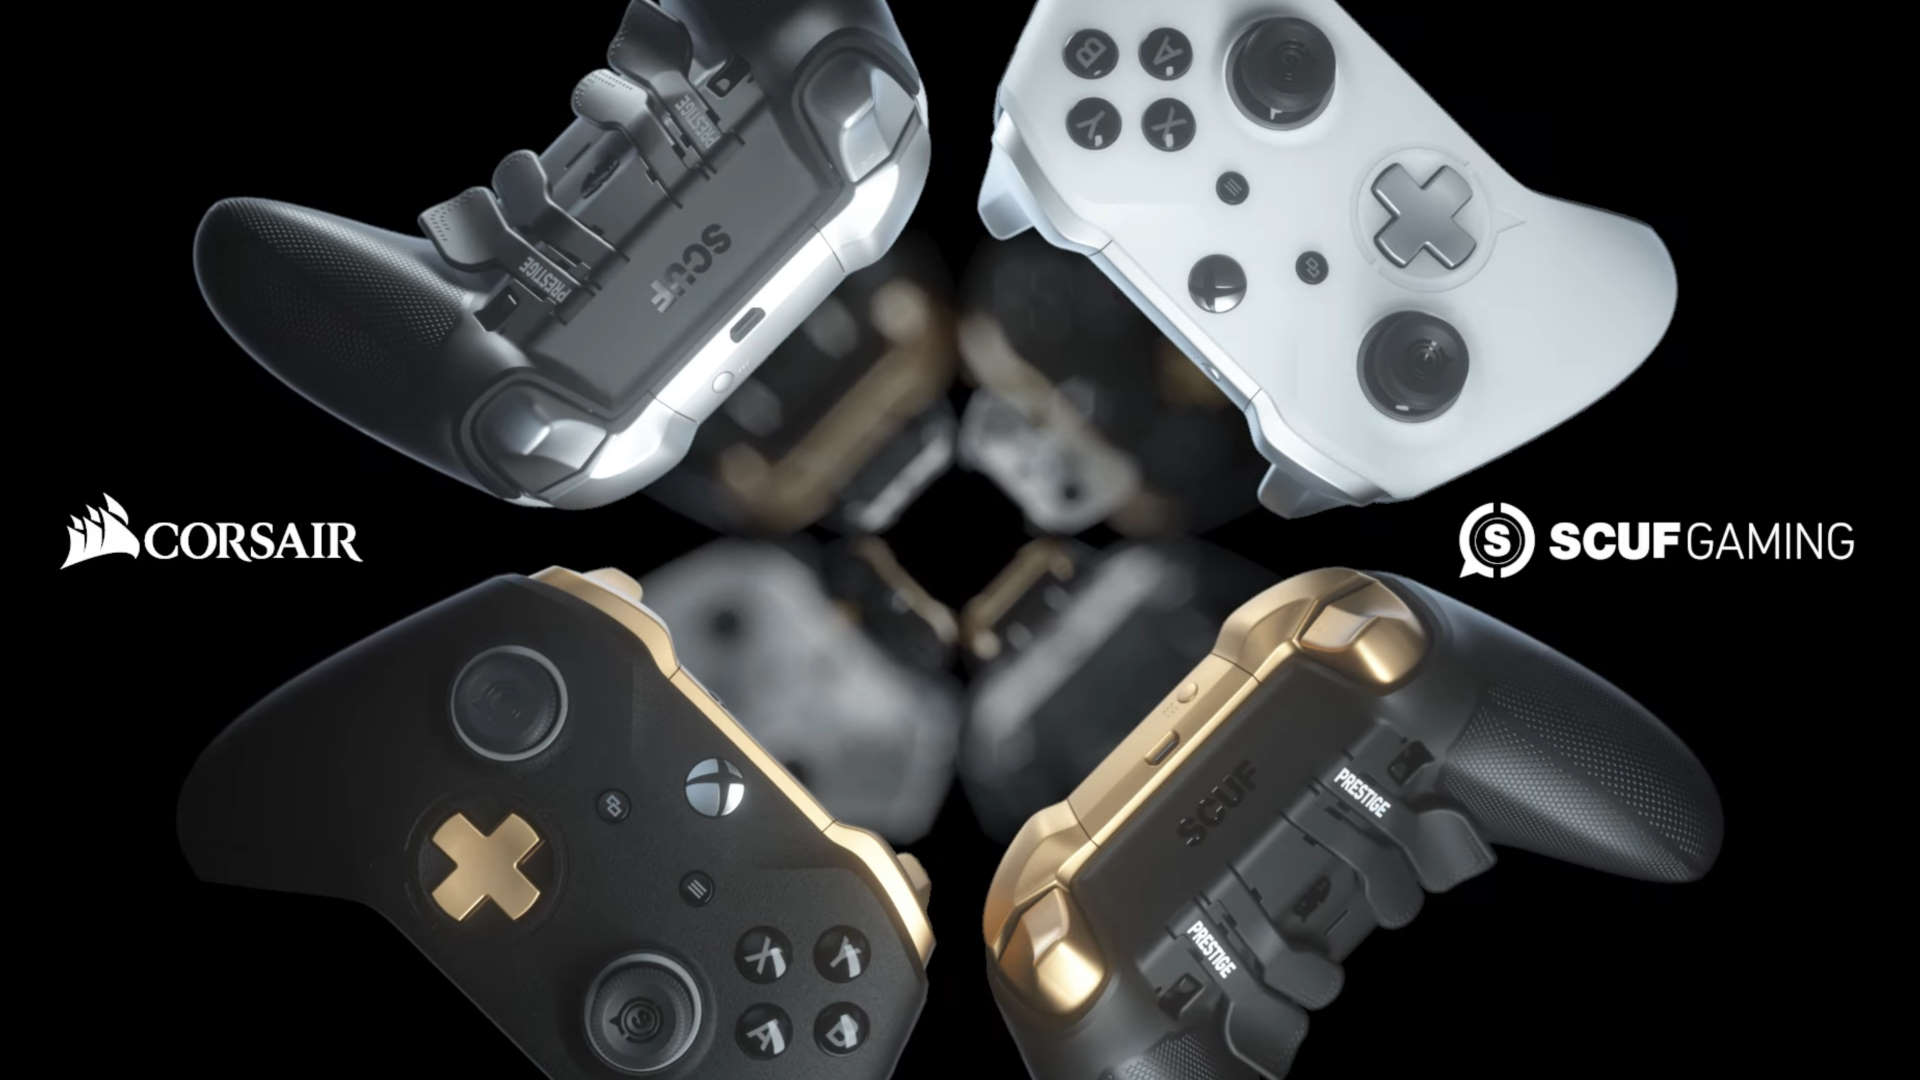 Corsair has now gone and picked up controller manufacturer SCUF